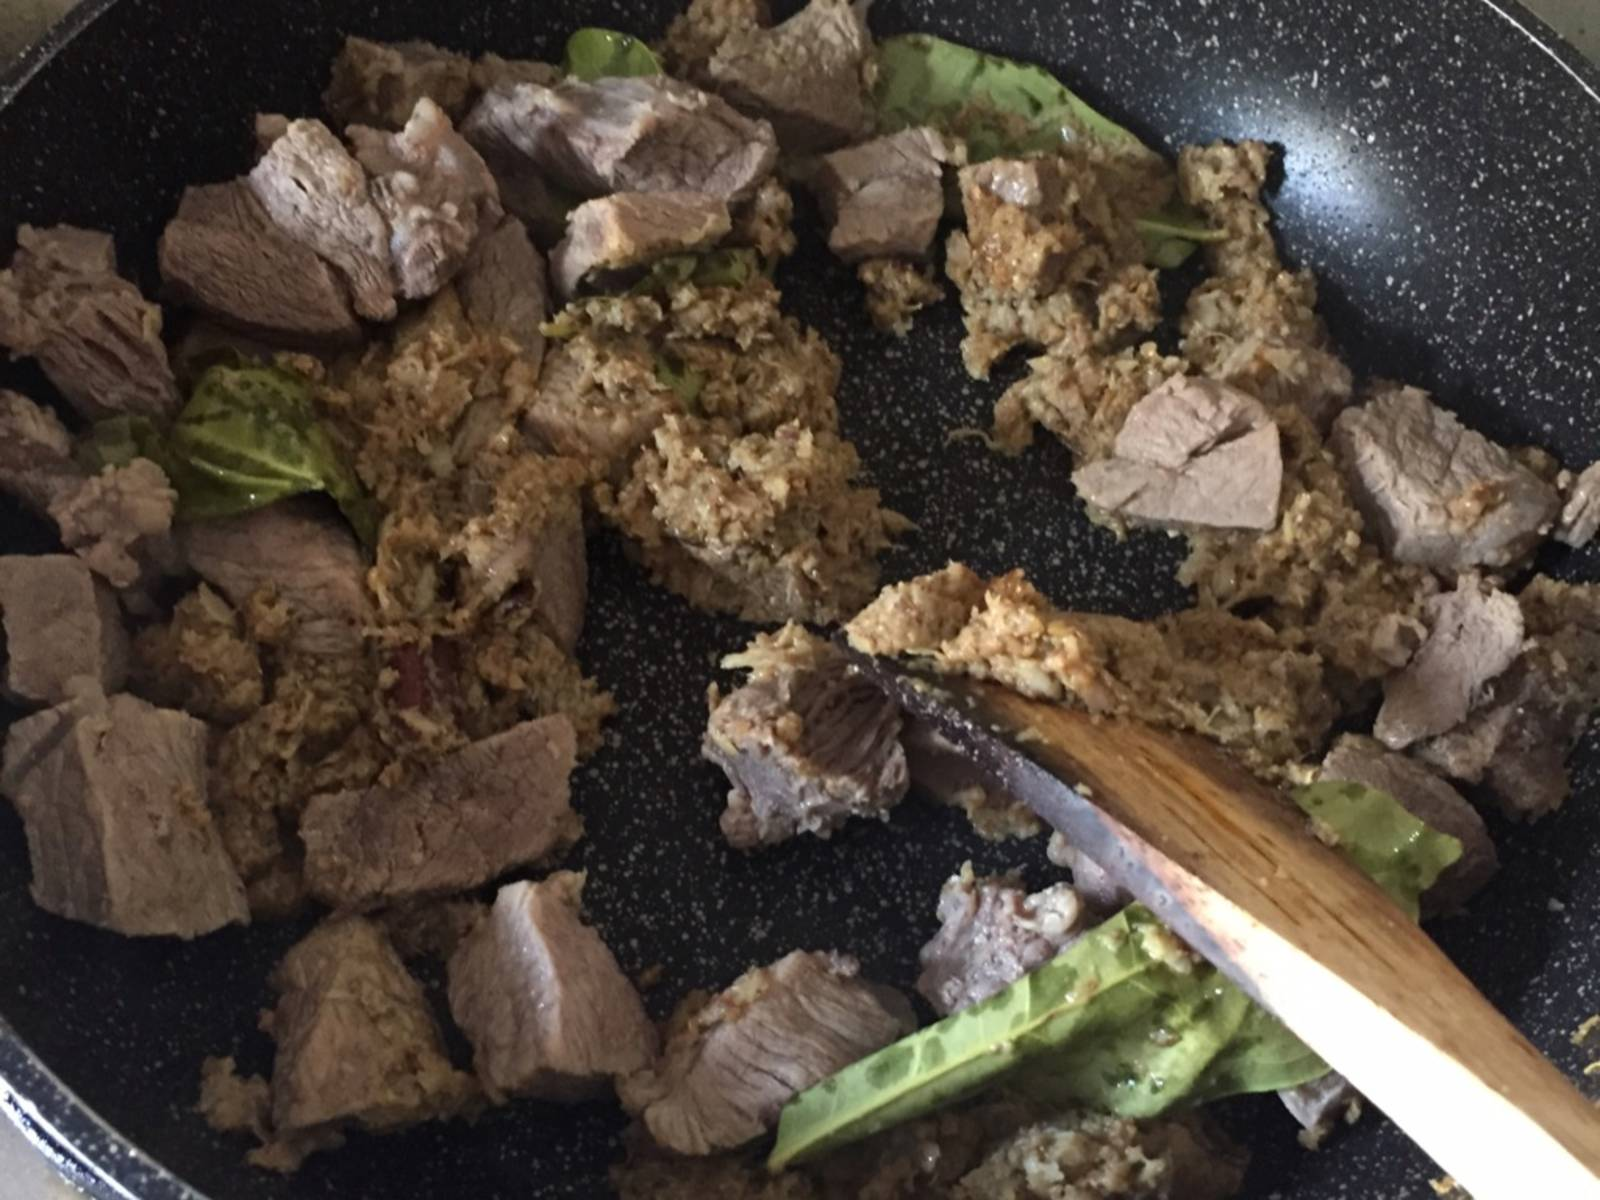 Sauté all of the blended ingredients and add nutmeg, cinnamon, bay leaves, and diced beef. Fry for approx. 10 min. until browned and aromatic. Meanwhile dice potatoes and put in the beef soup water.